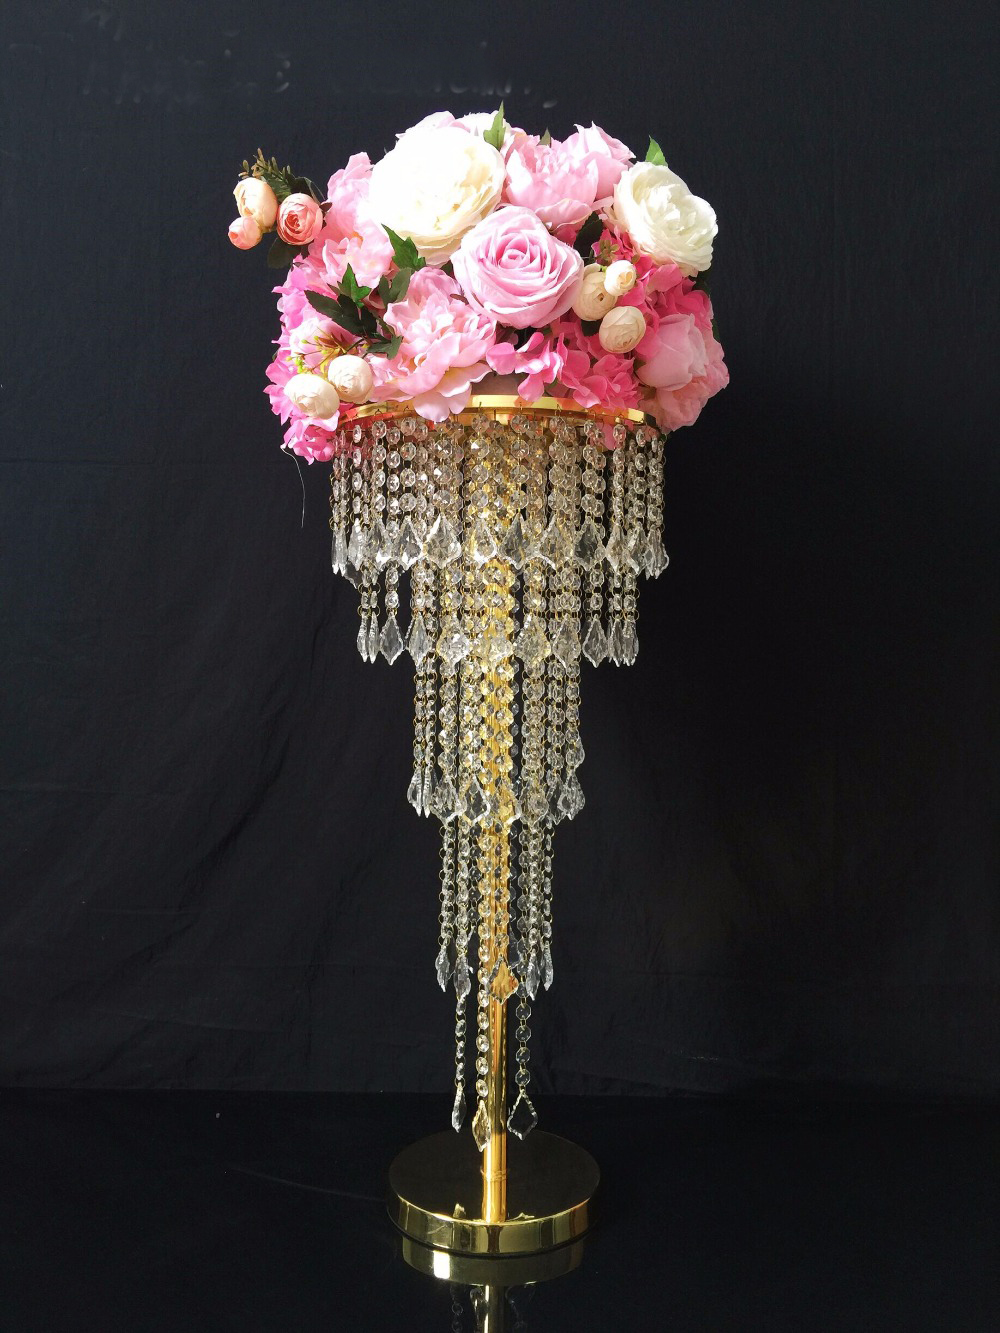 Gold Table Centerpiece Flower Stand 5 Tiers Crystal Chandelier with beads strands Wedding PropsGold Table Centerpiece Flower Stand 5 Tiers Crystal Chandelier with beads strands Wedding Props